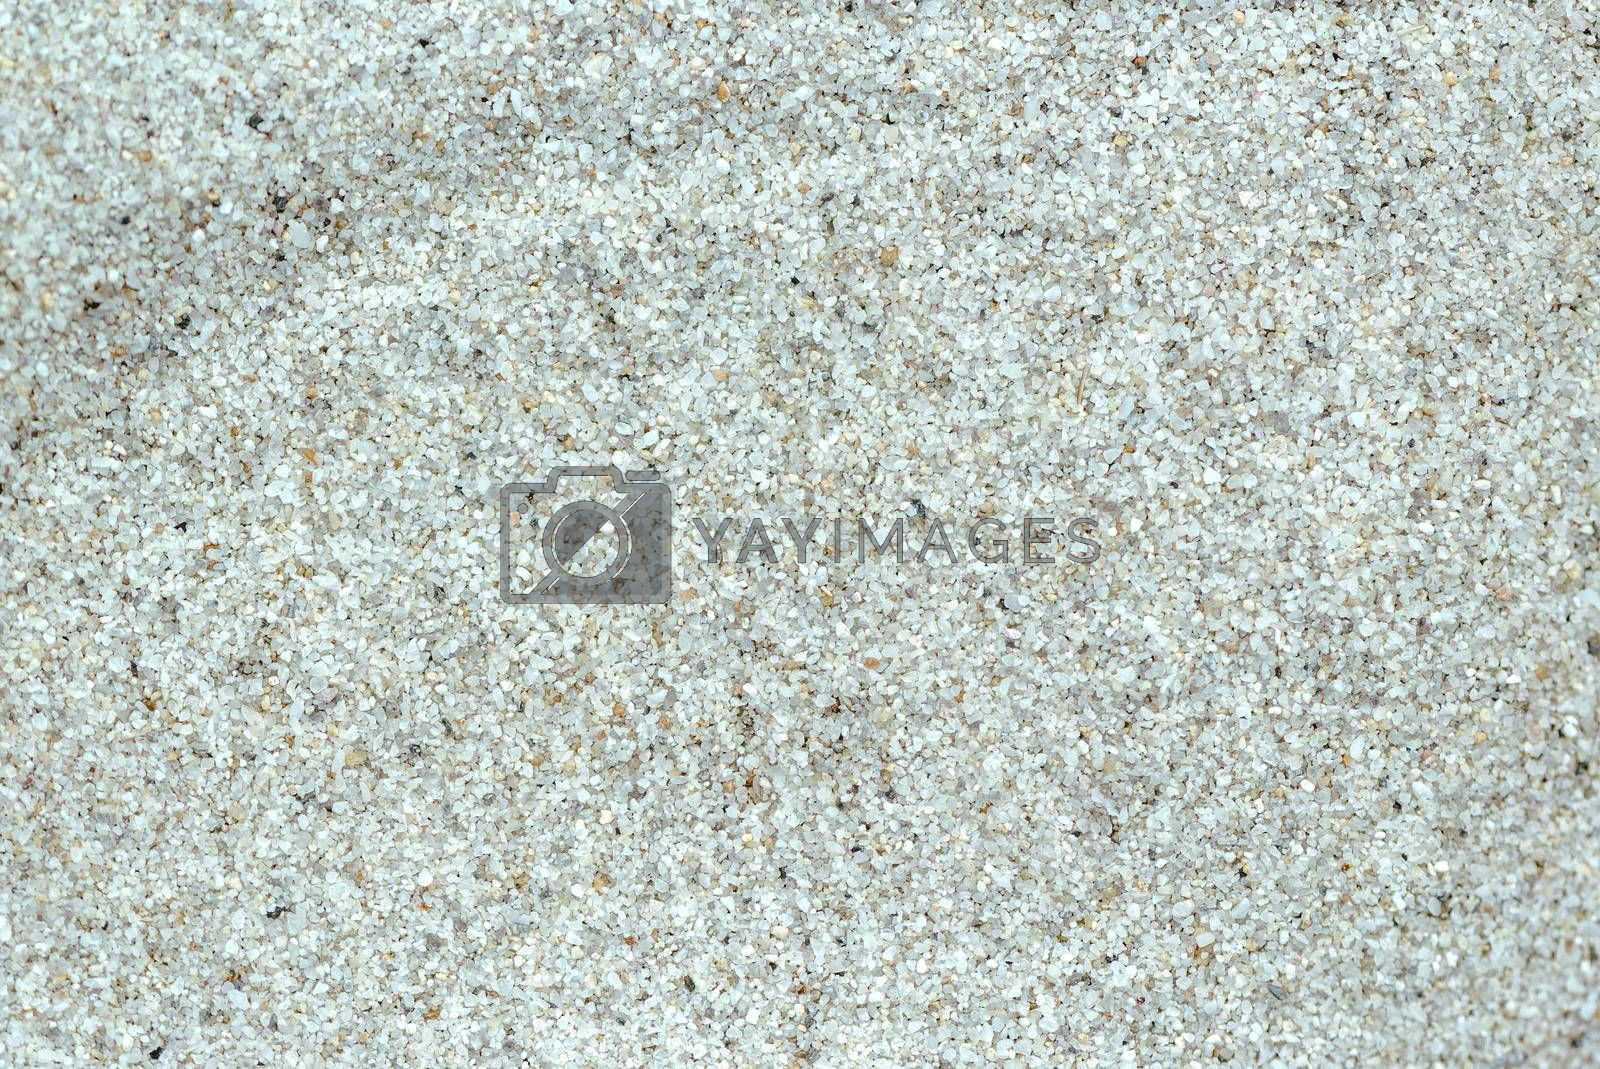 Quartz sand texture, full frame top view of sandy background